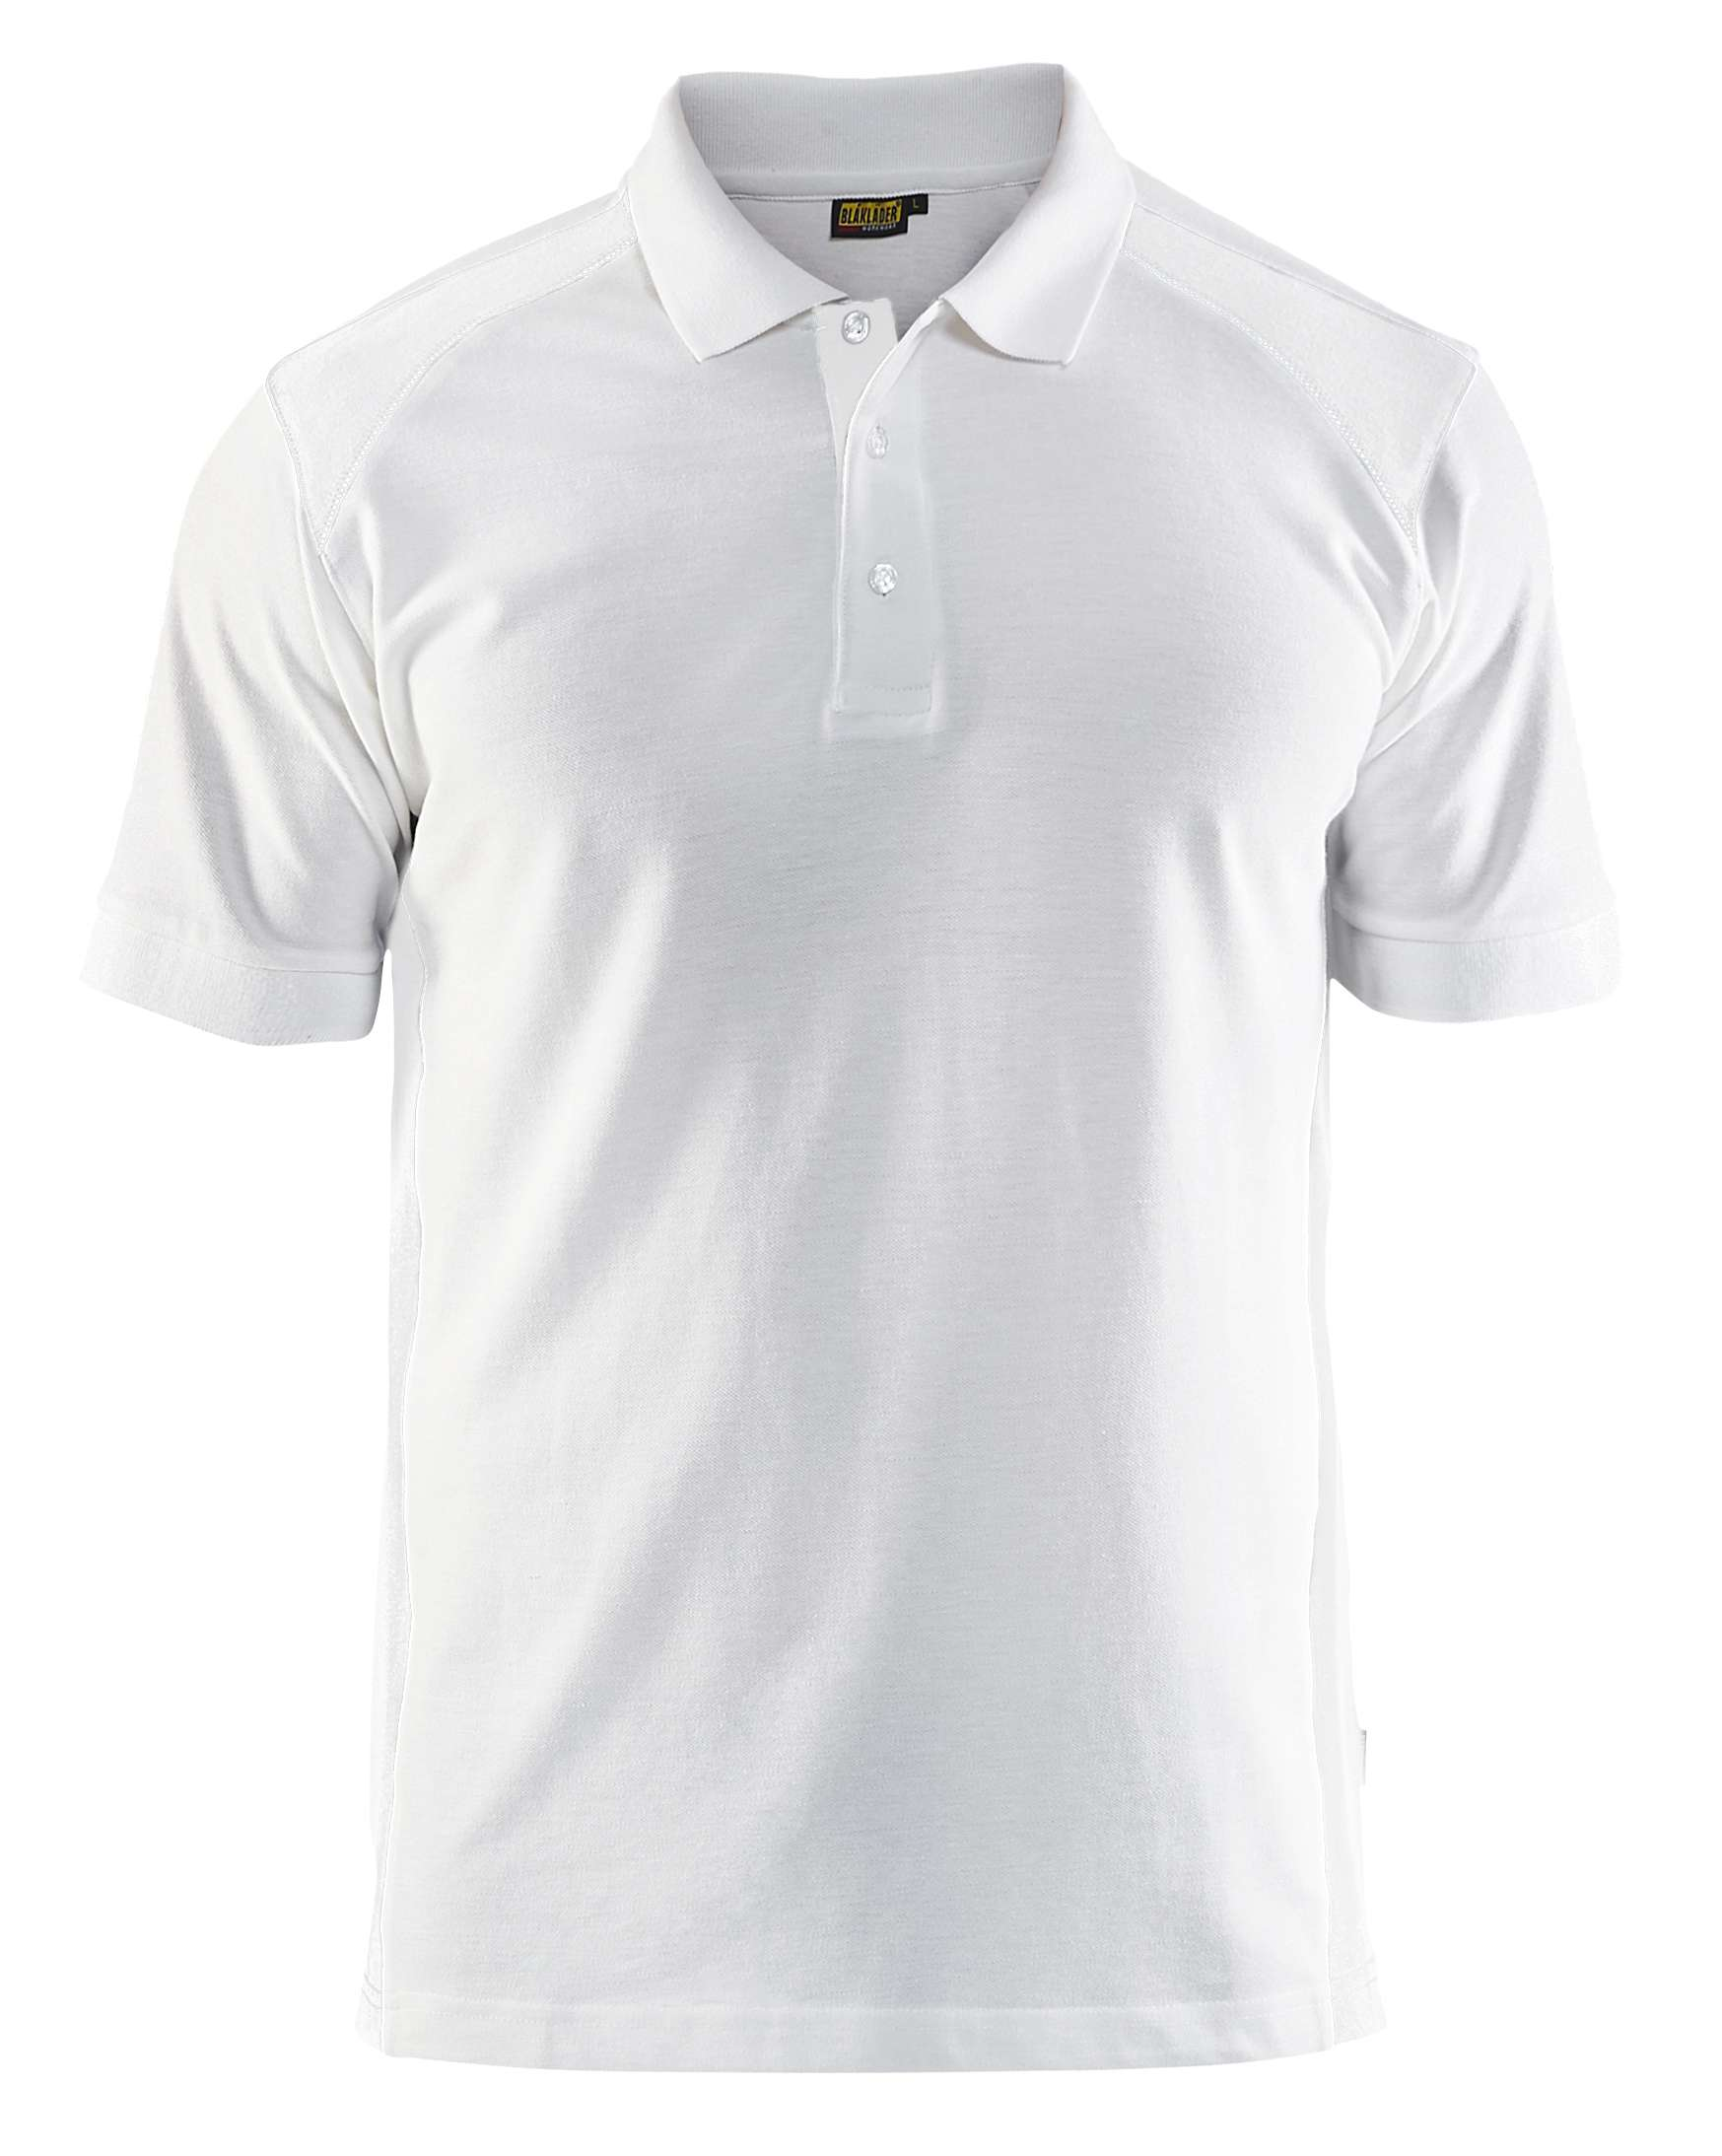 Blaklader Polo shirts 33241050 wit(1000)